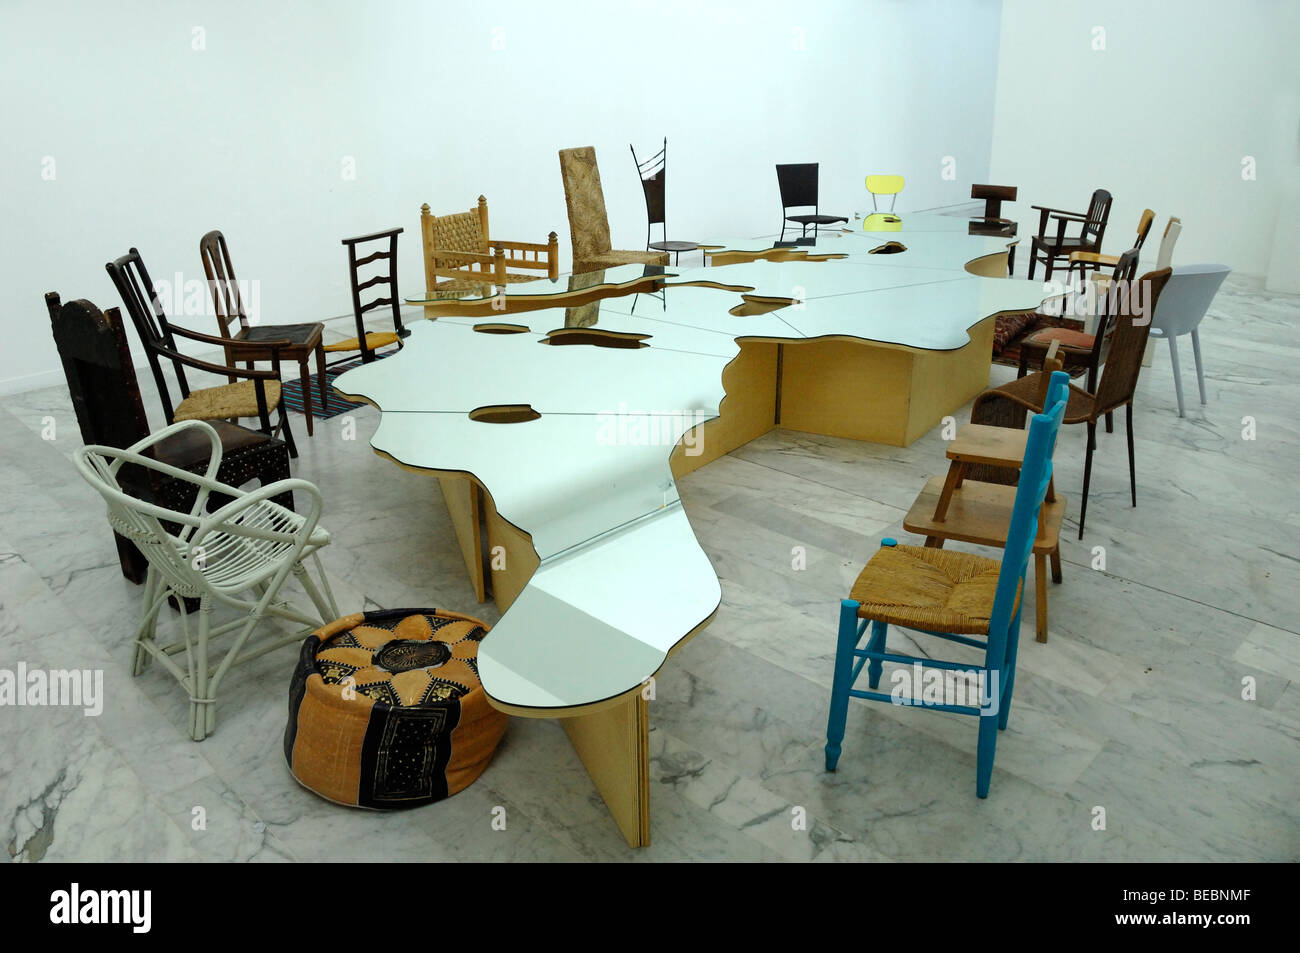 Superb Display Of Tables Chairs Installation Art At The Modern Spiritservingveterans Wood Chair Design Ideas Spiritservingveteransorg